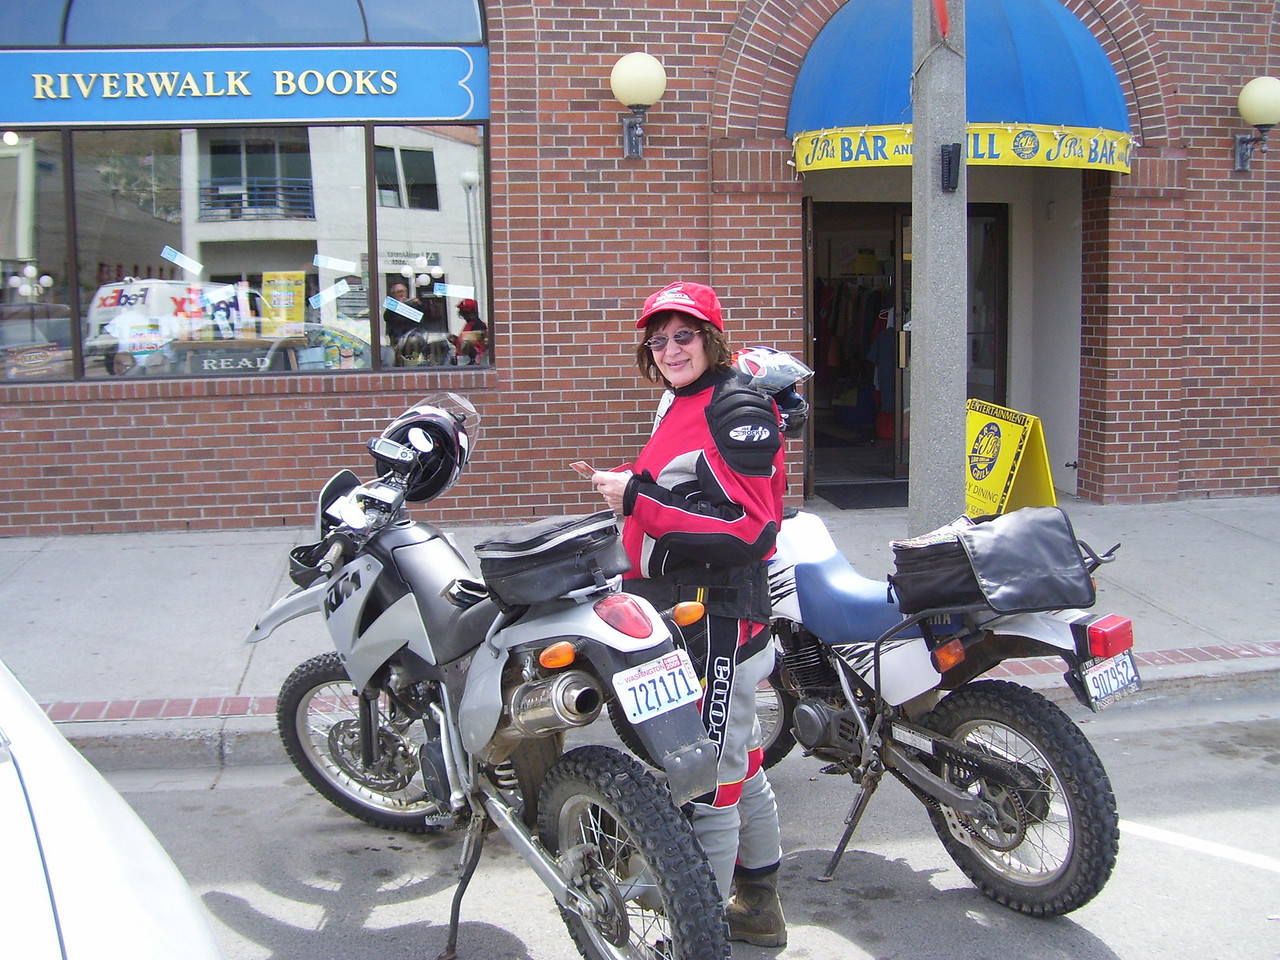 We stopped for lunch in Chelan at a 100 year old Bar. It was great food.